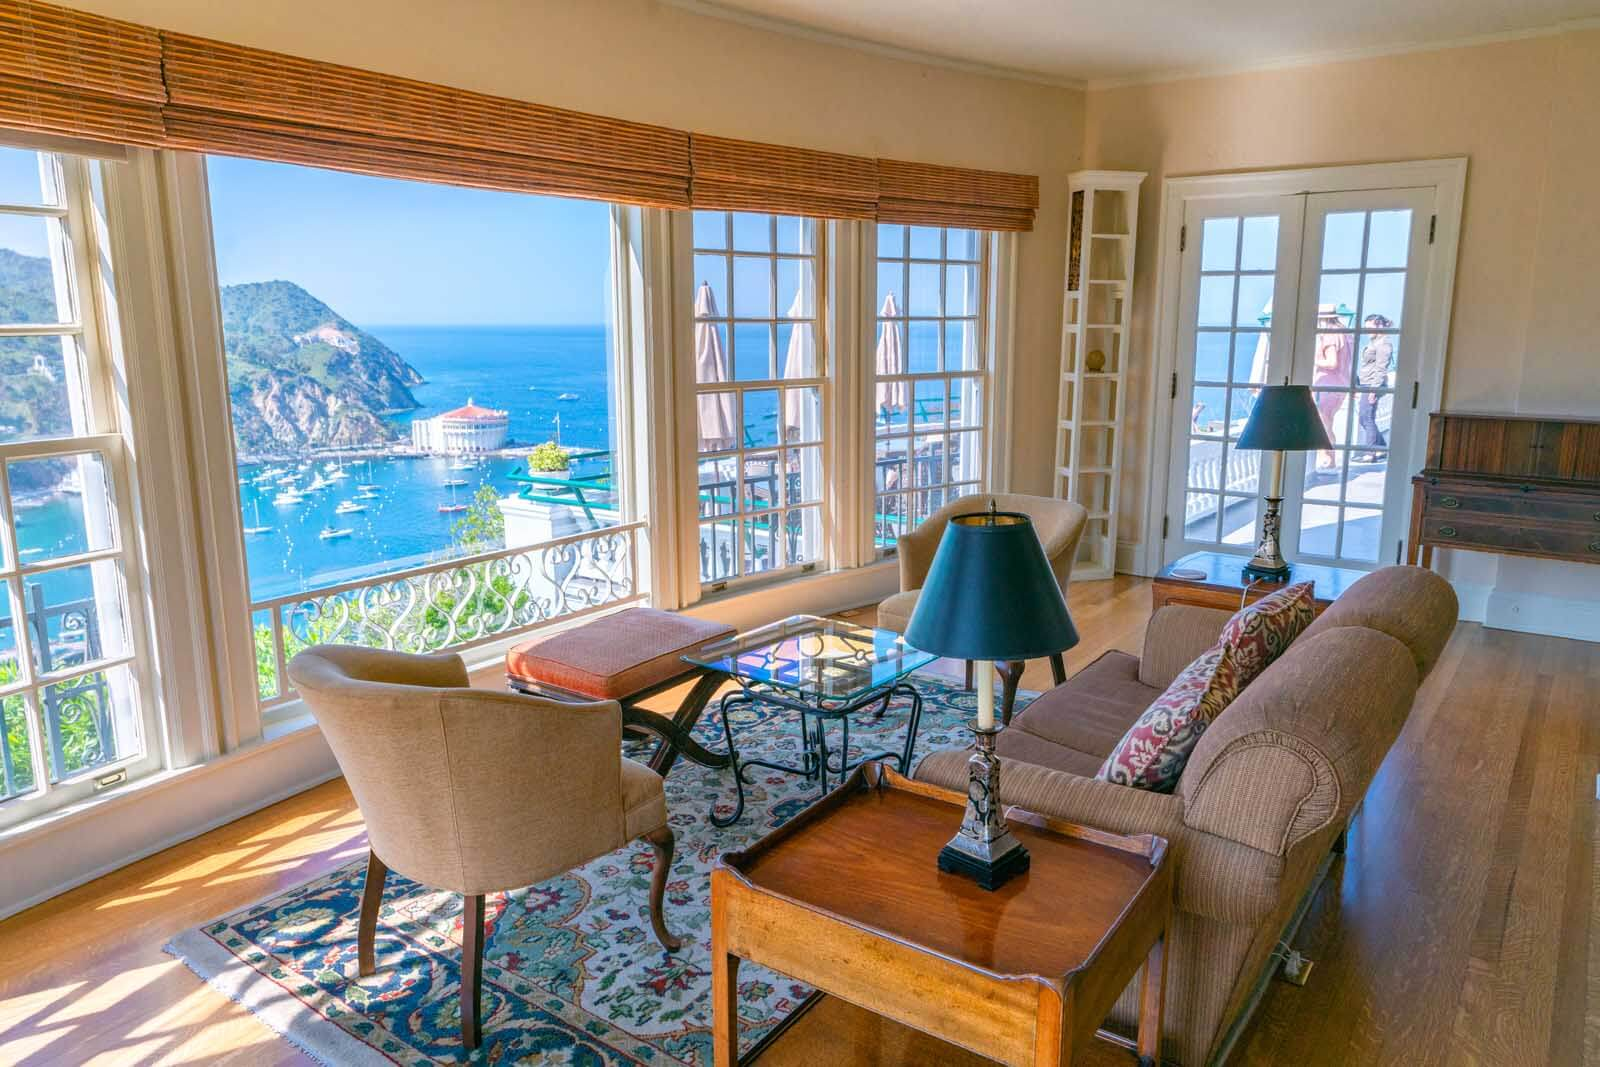 the epic living room view from the Inn at Mt Ada in Catalina